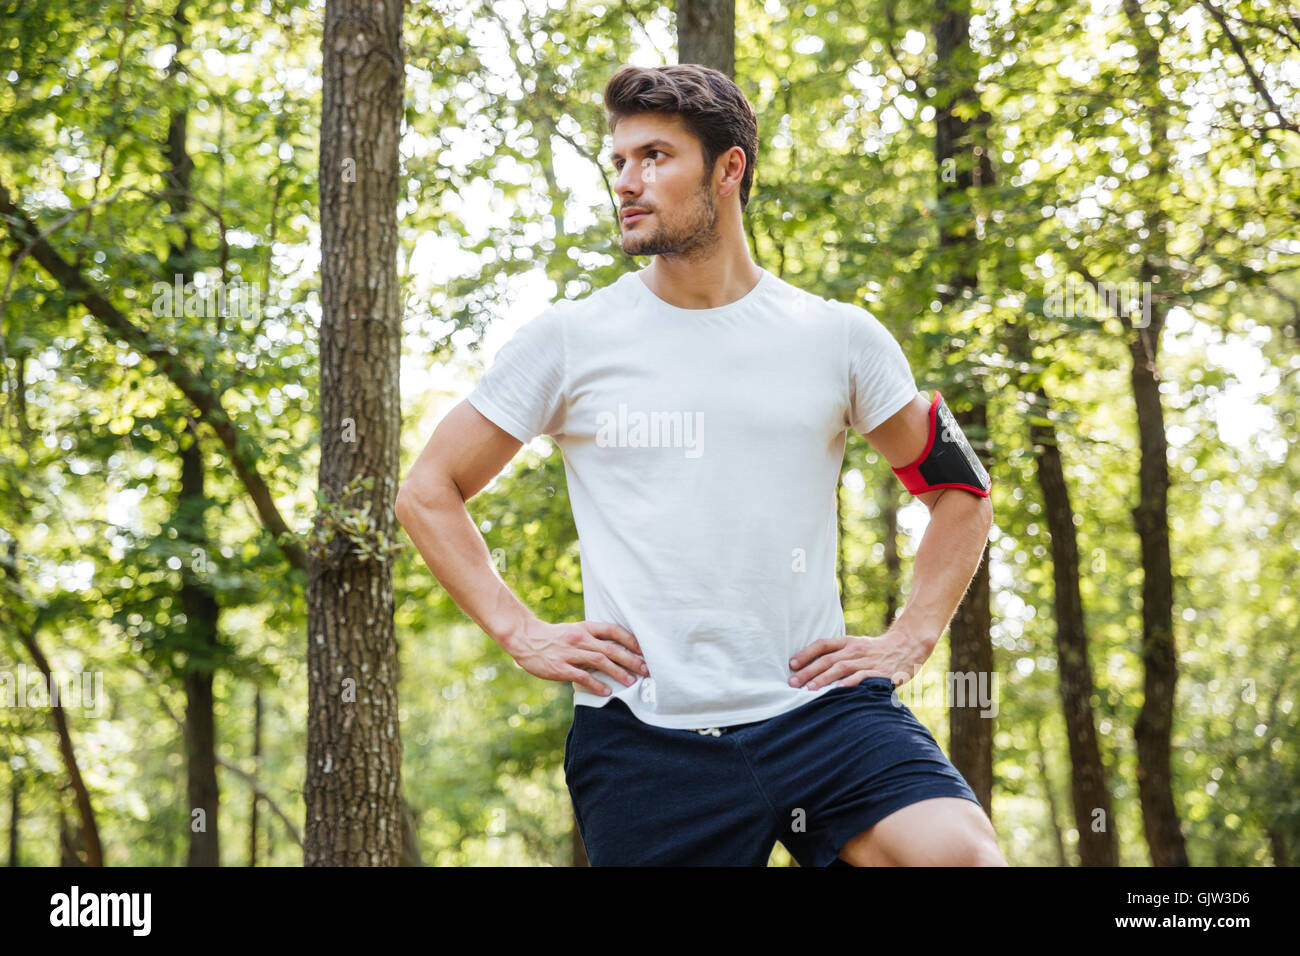 Portrait of attractive young man athlete with cell phone in handband standing in forest - Stock Image